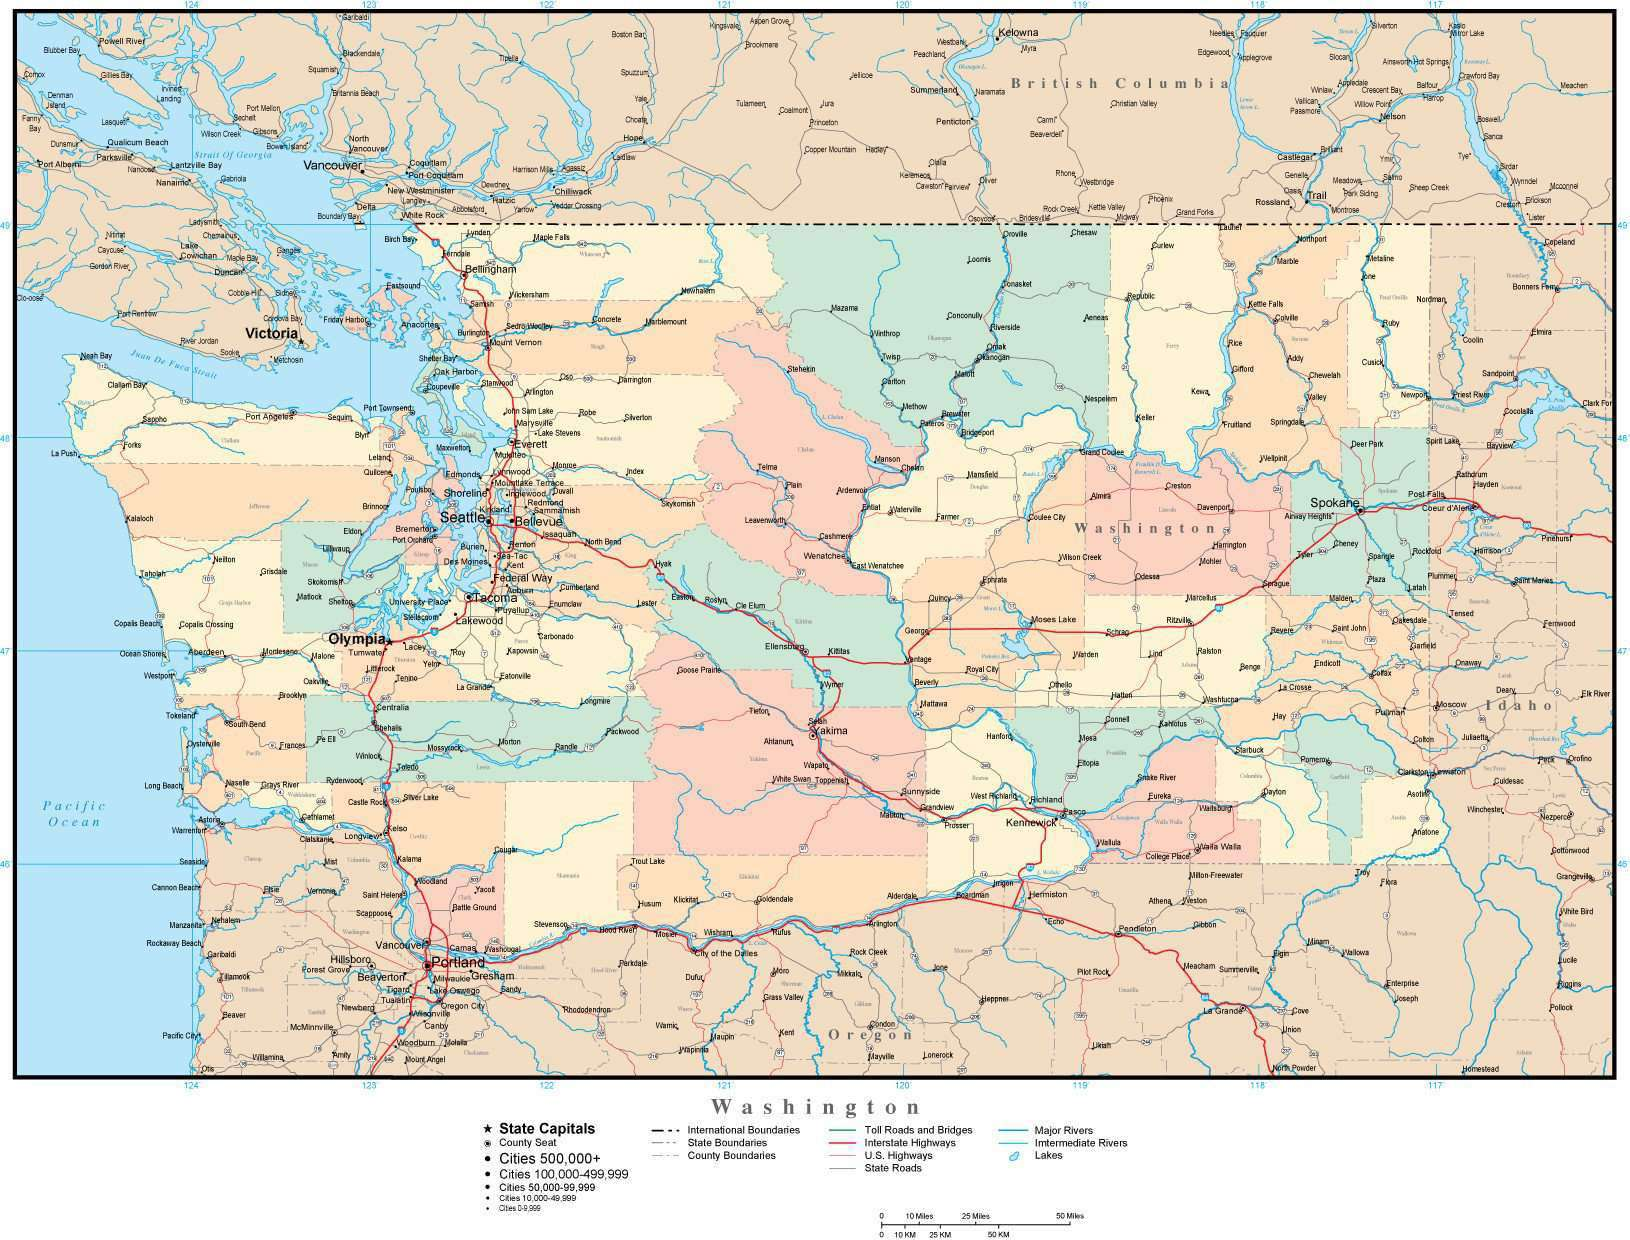 Picture of: Washington Adobe Illustrator Map With Counties Cities County Seats Major Roads